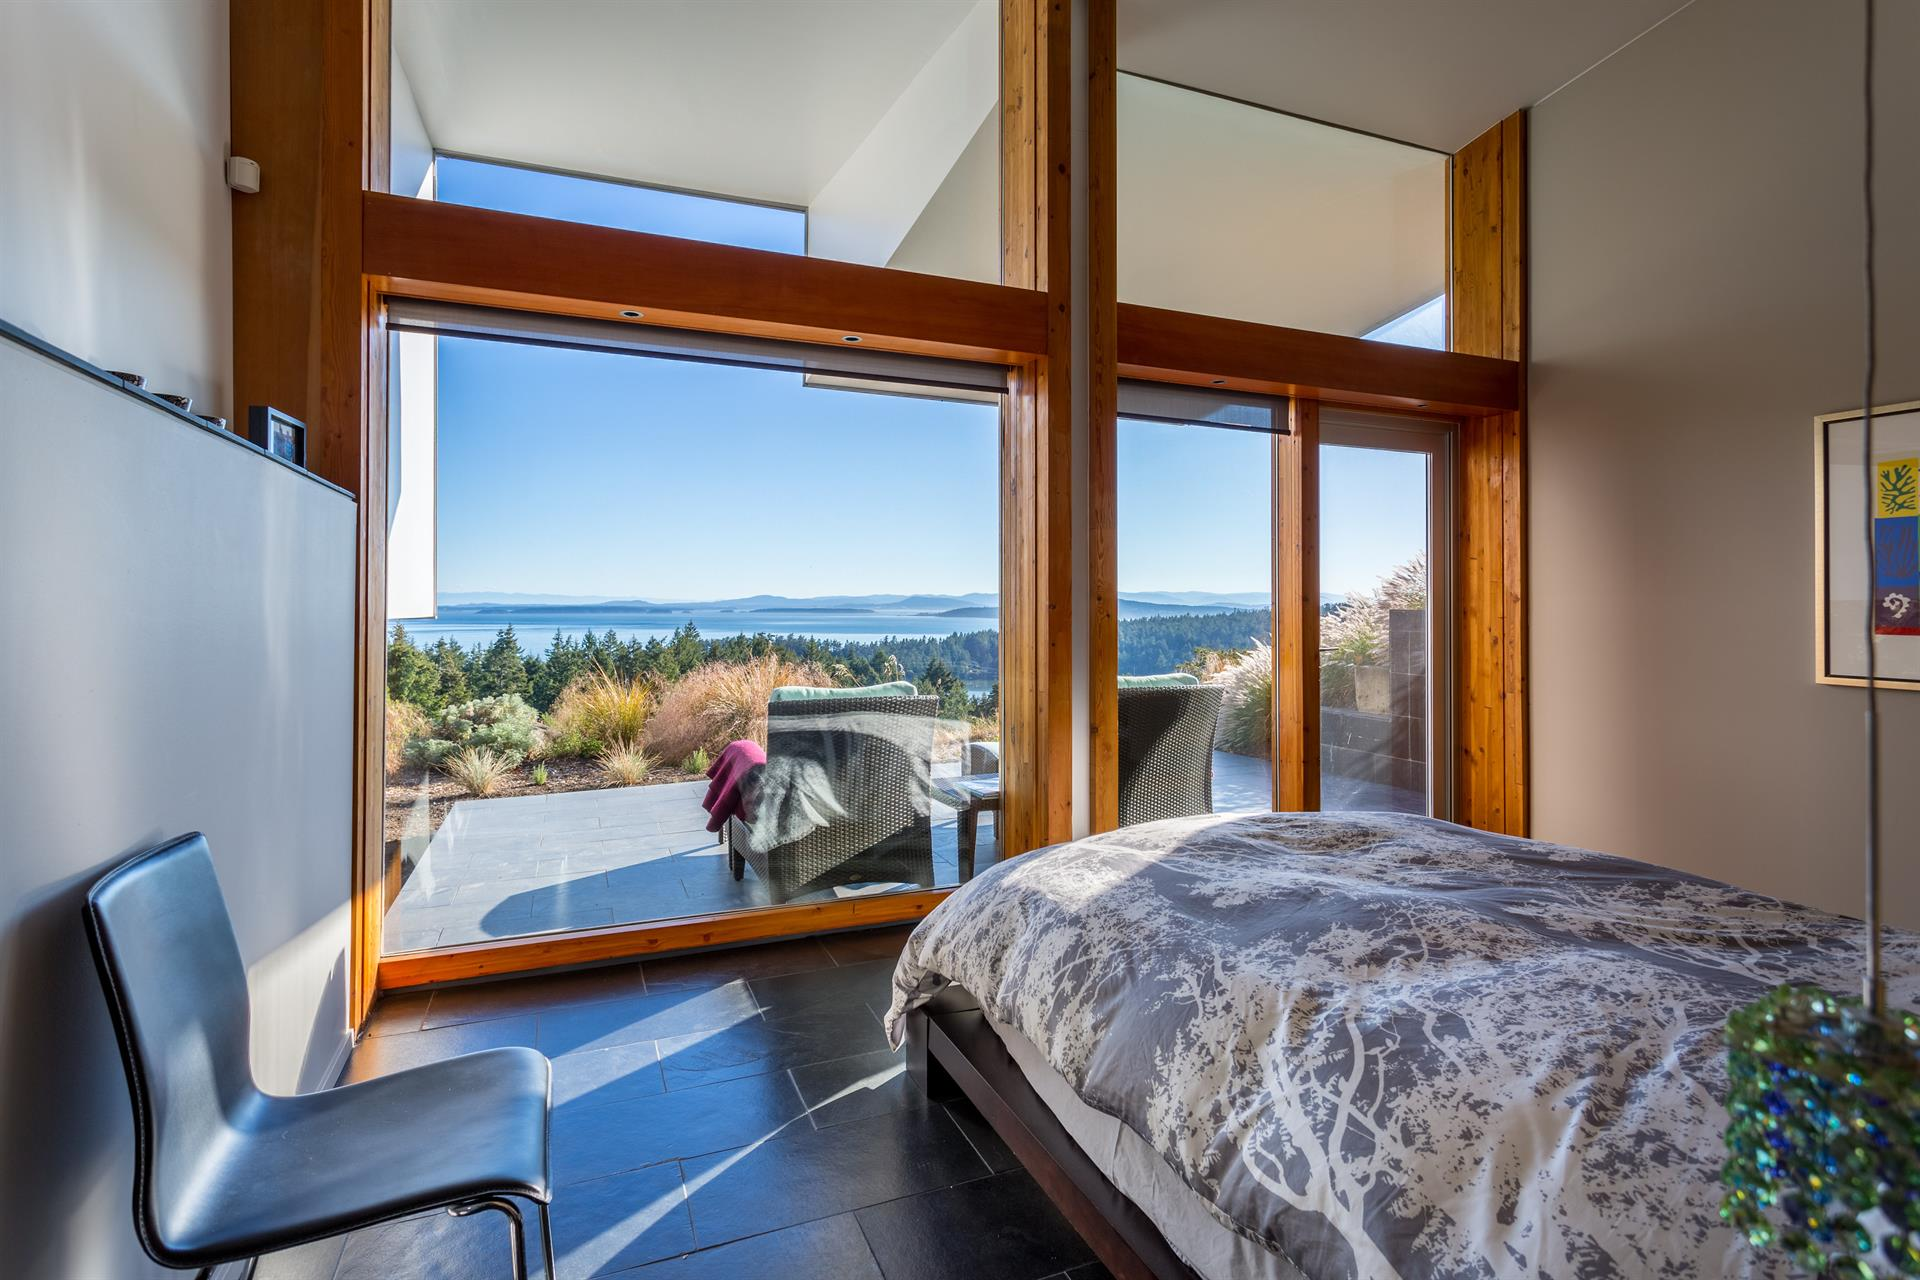 Additional photo for property listing at 9809 Spalding Rd Gulf Islands, Brits-Columbia,Canada